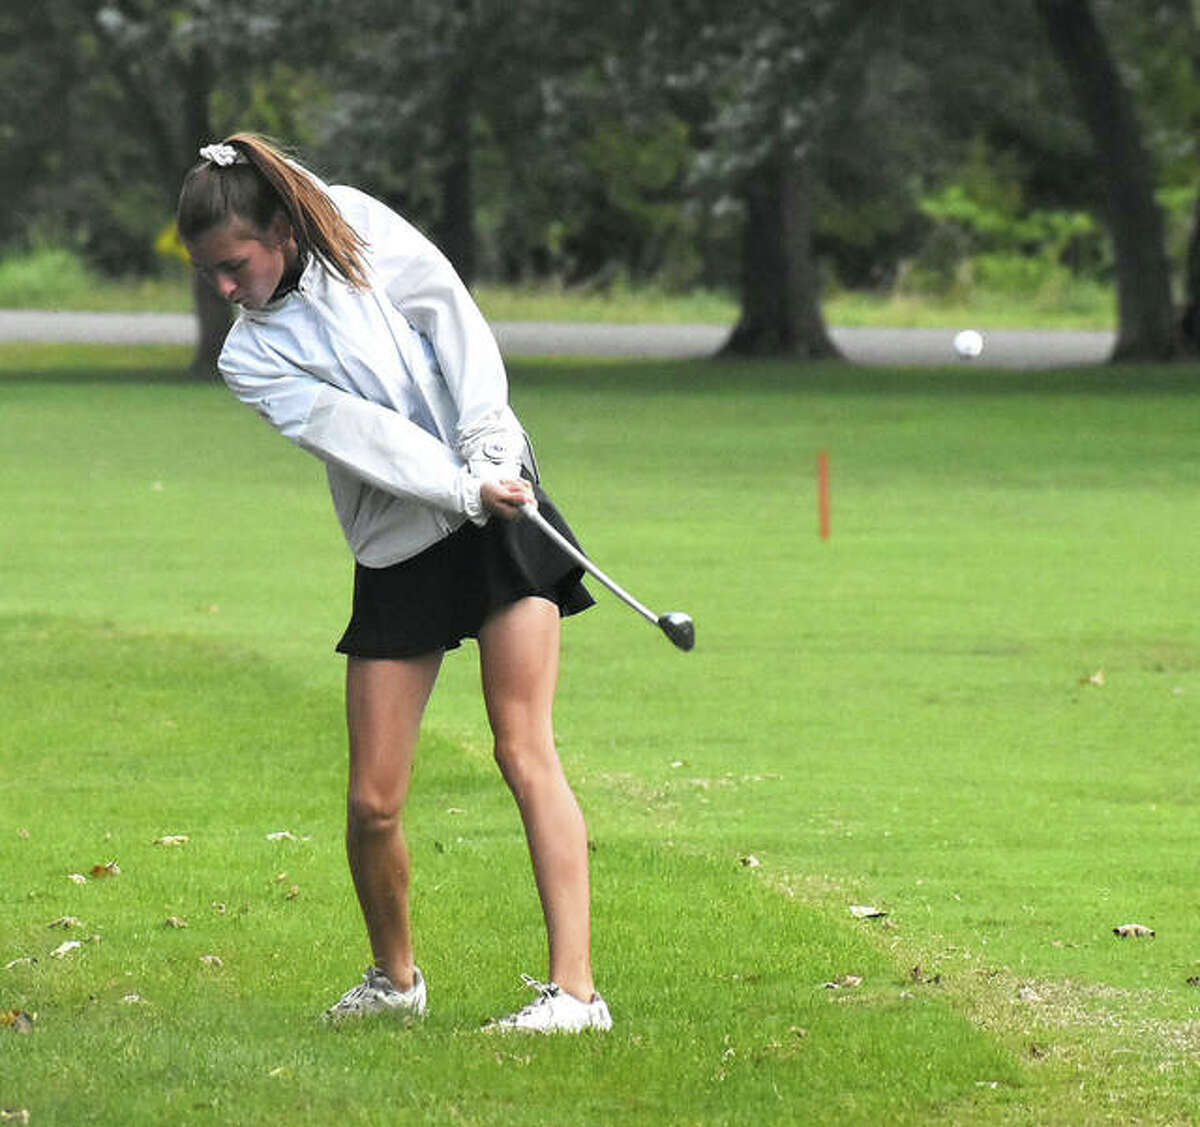 Edwardsville's Emilie Fry hits her third shot on No. 1 at Oak Brook Golf Club during a triangular with Marquette and Triad on Wednesday in Edwardsville.